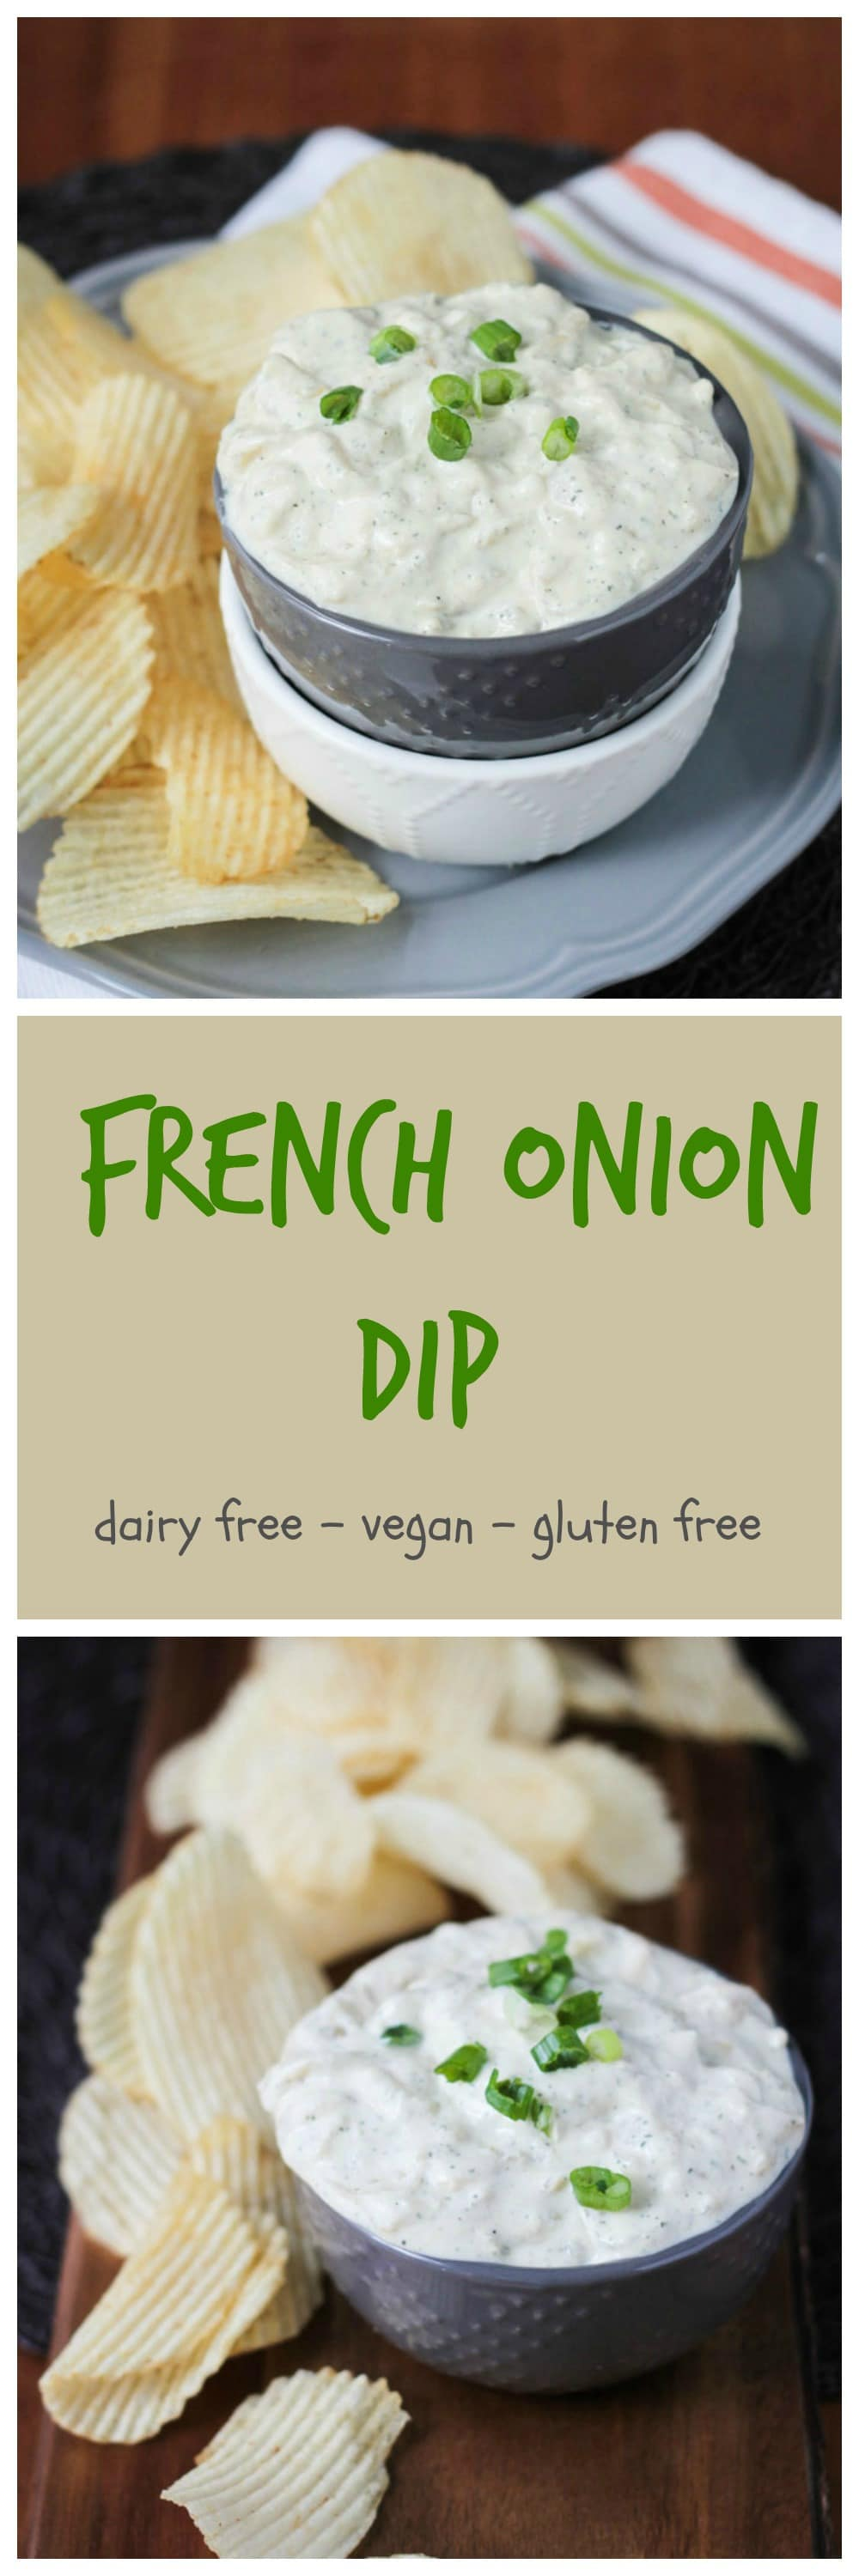 Vegan French Onion Dip with Dill - a combo of my new favorite dips - french onion dip and dill dip. It's creamy and tangy and contains 2 whole onions! It the perfect pairing with potato chips, raw veggies, pita chips or crackers...or even spread on a sandwich or in a wrap! Cure your munchies with this vegan french onion dip with dill! #vegan #dip #appetizer #partyfood #frenchonion #dairyfree #oilfree #wholefoods #plantbased #snack